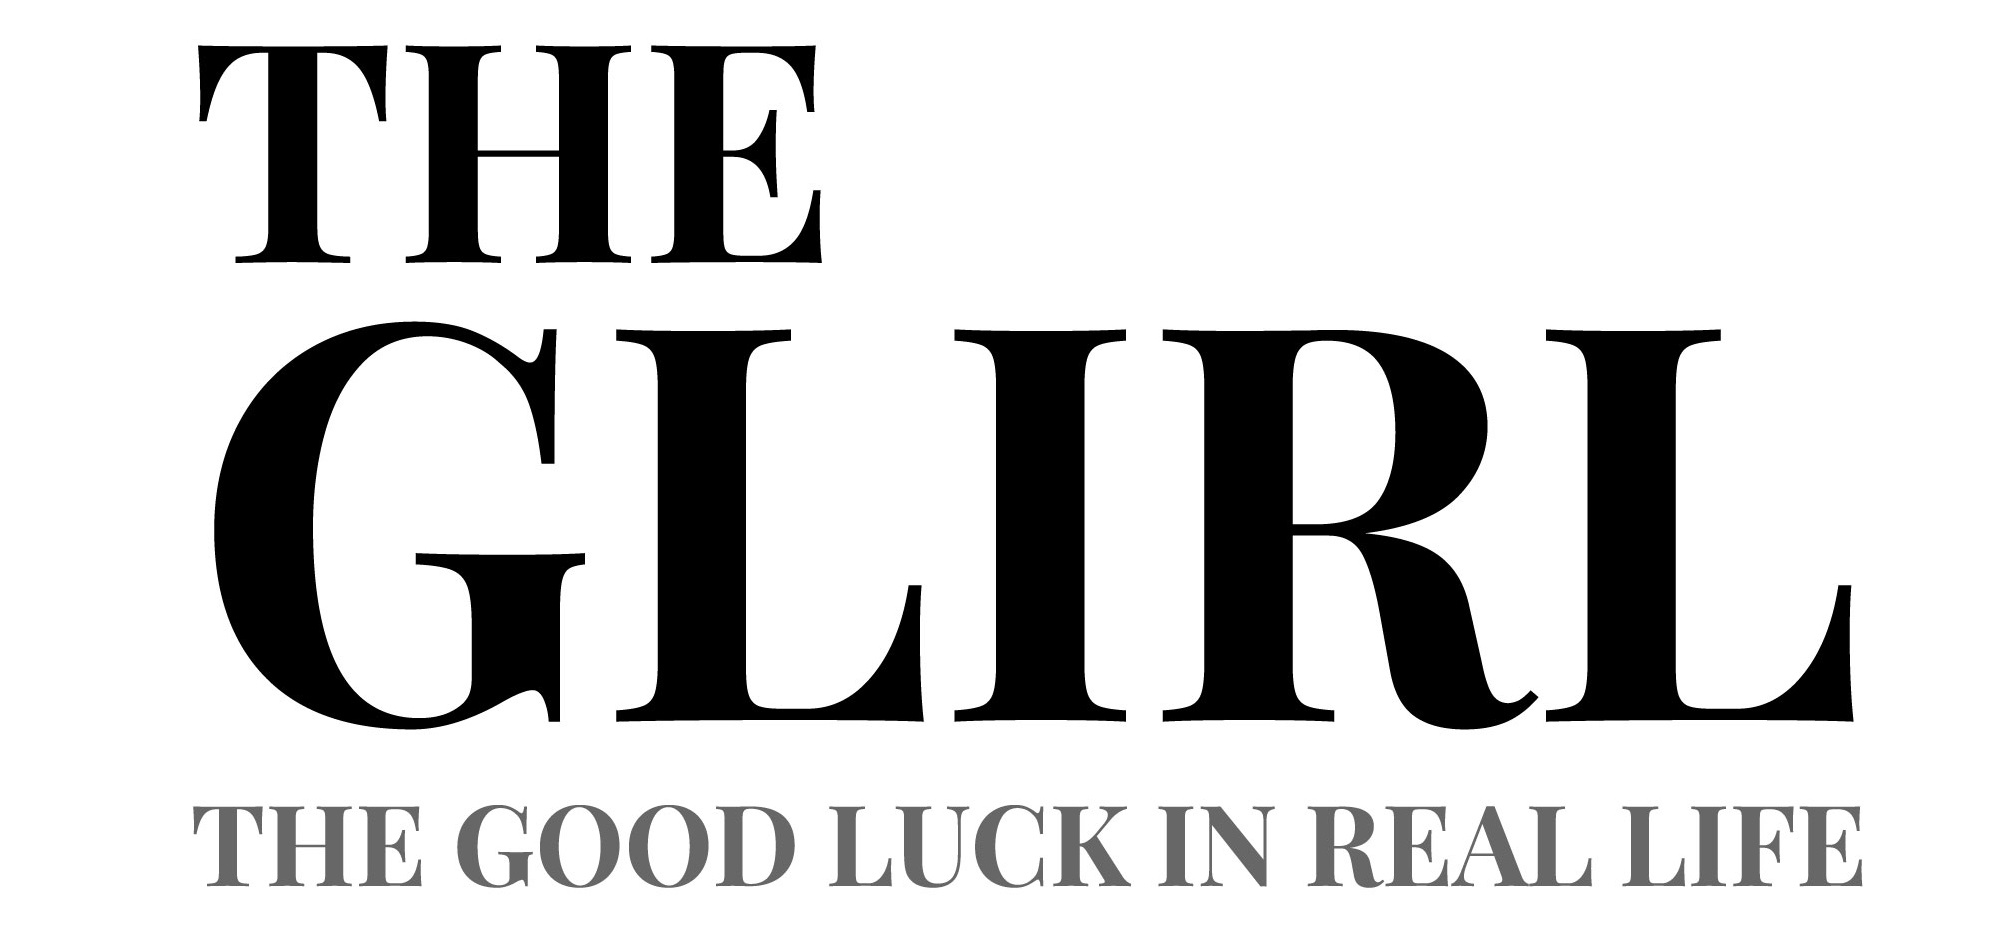 THEGLIRL.COM | The Glirl is India's leading online fashion, food, lifestyle & travel content marketing platform.